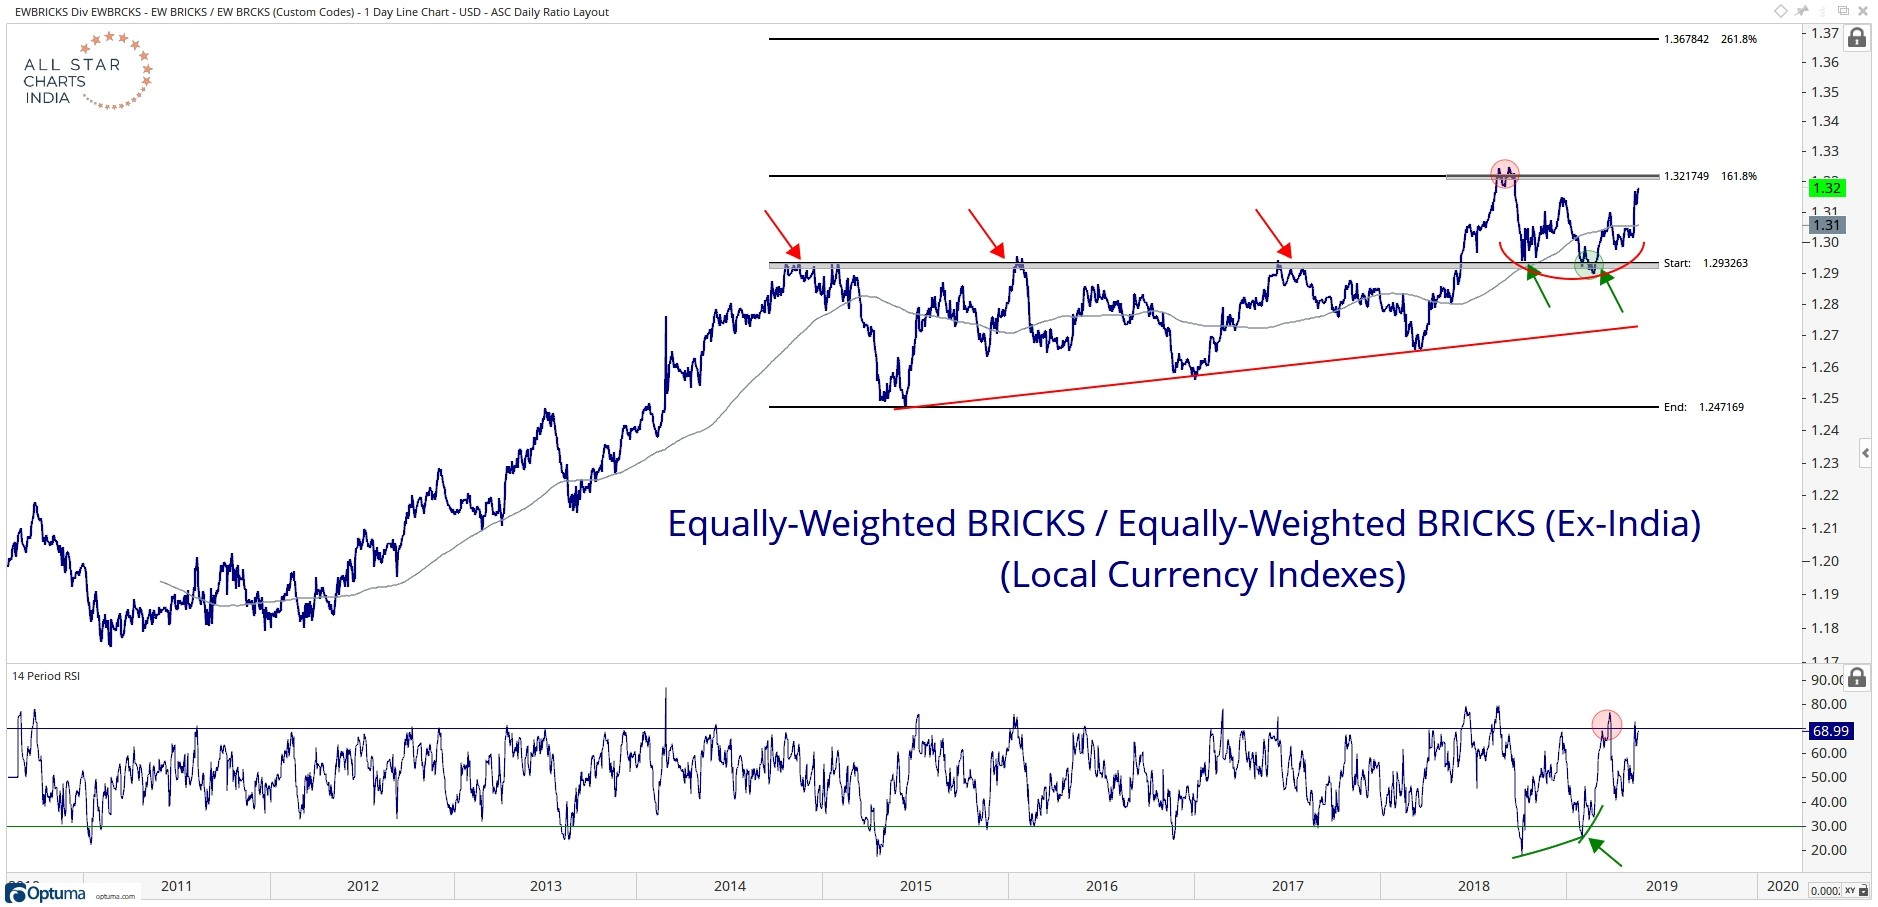 Long-term chart of the ratio of the equally weighted BRICKS relative to the equally weighted BRICKS excluding India.